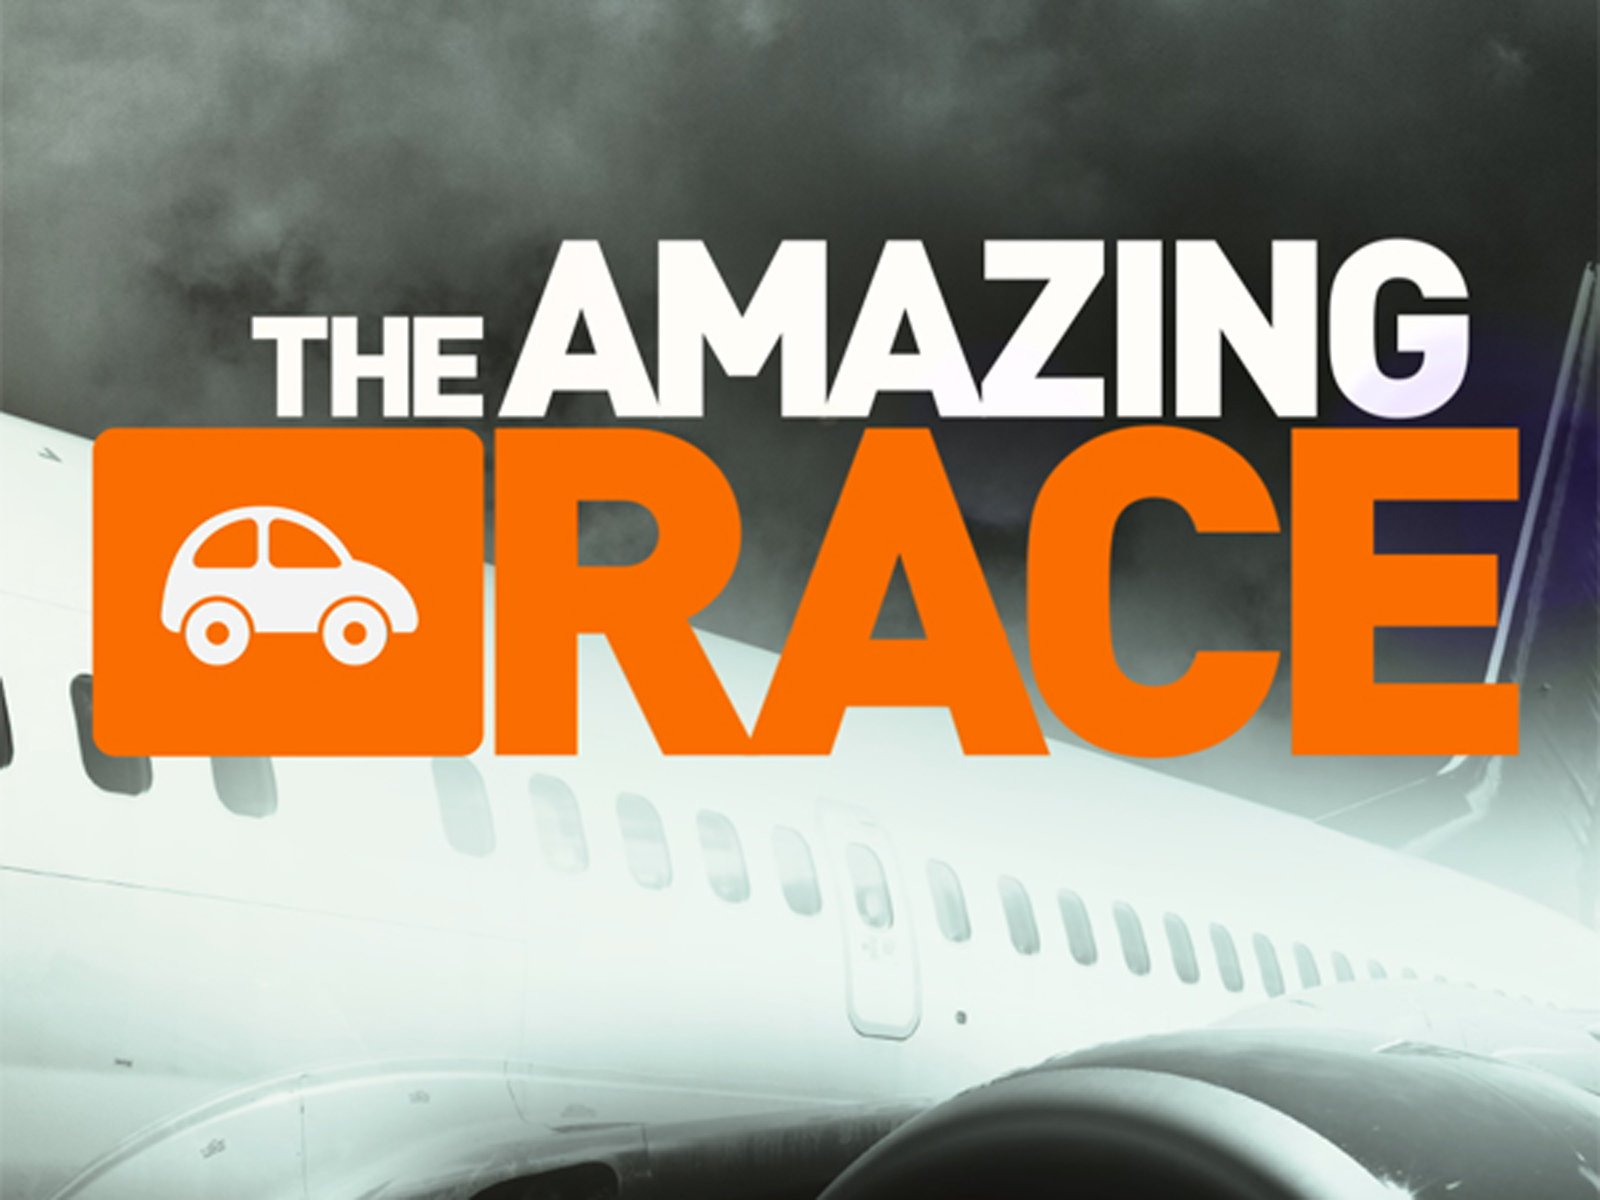 Amazon com: Watch The Amazing Race, Season 17 | Prime Video